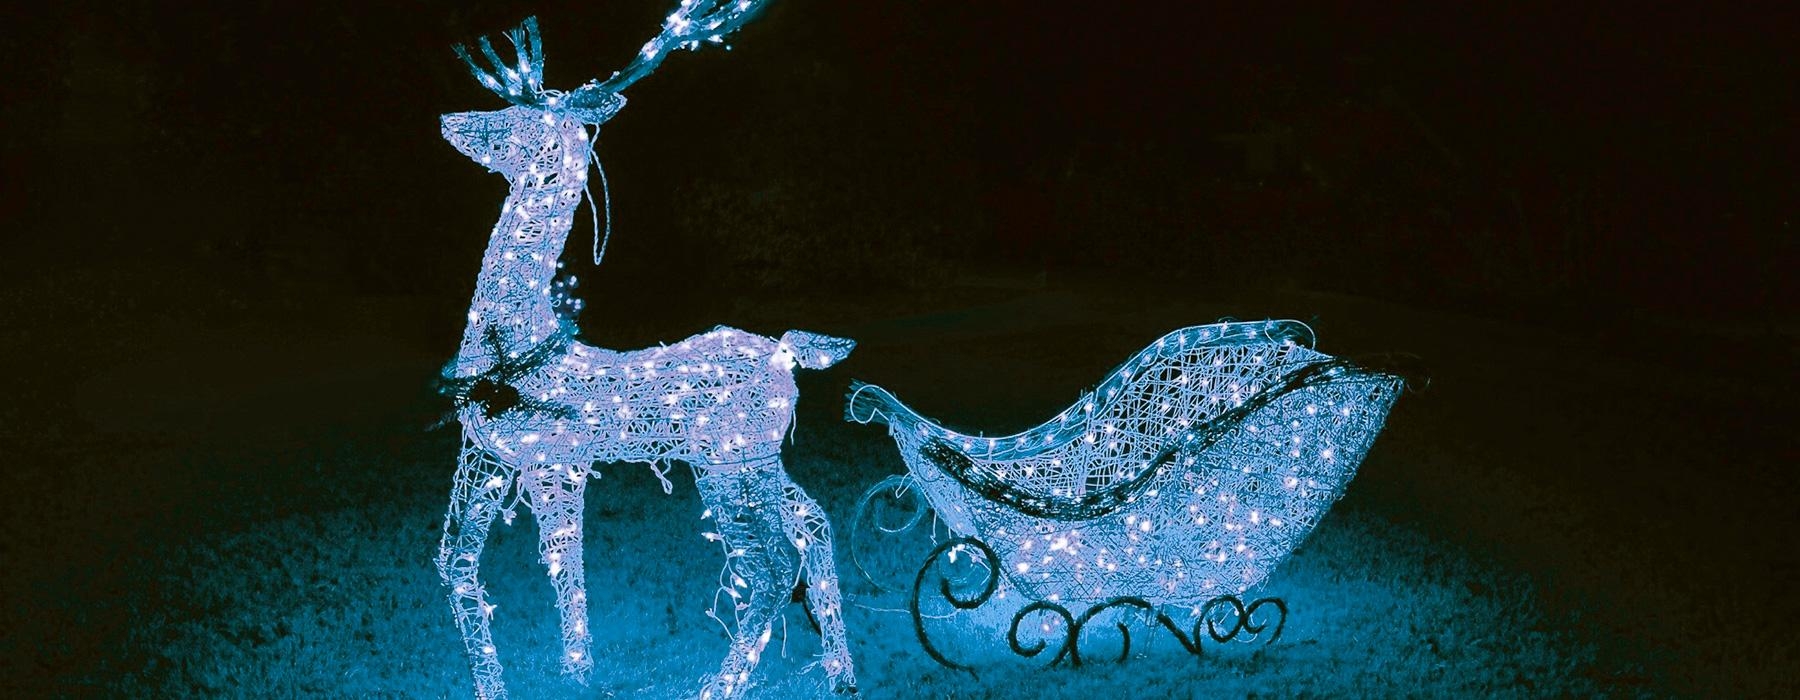 White sparkling reindeer with sled